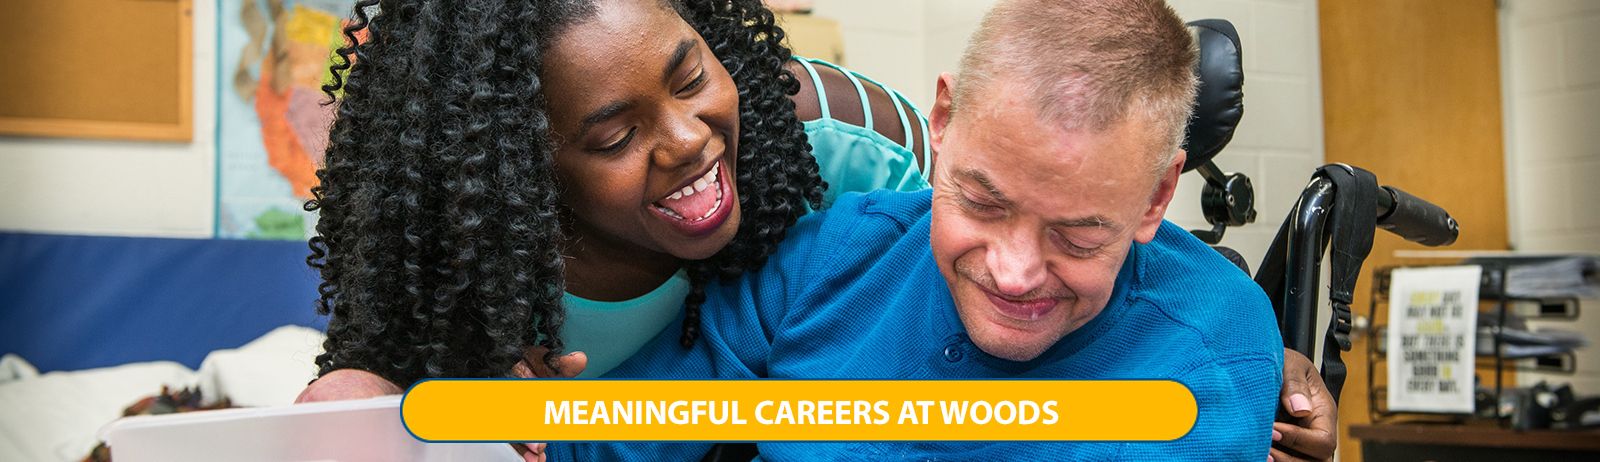 Meaningful Careers at Woods